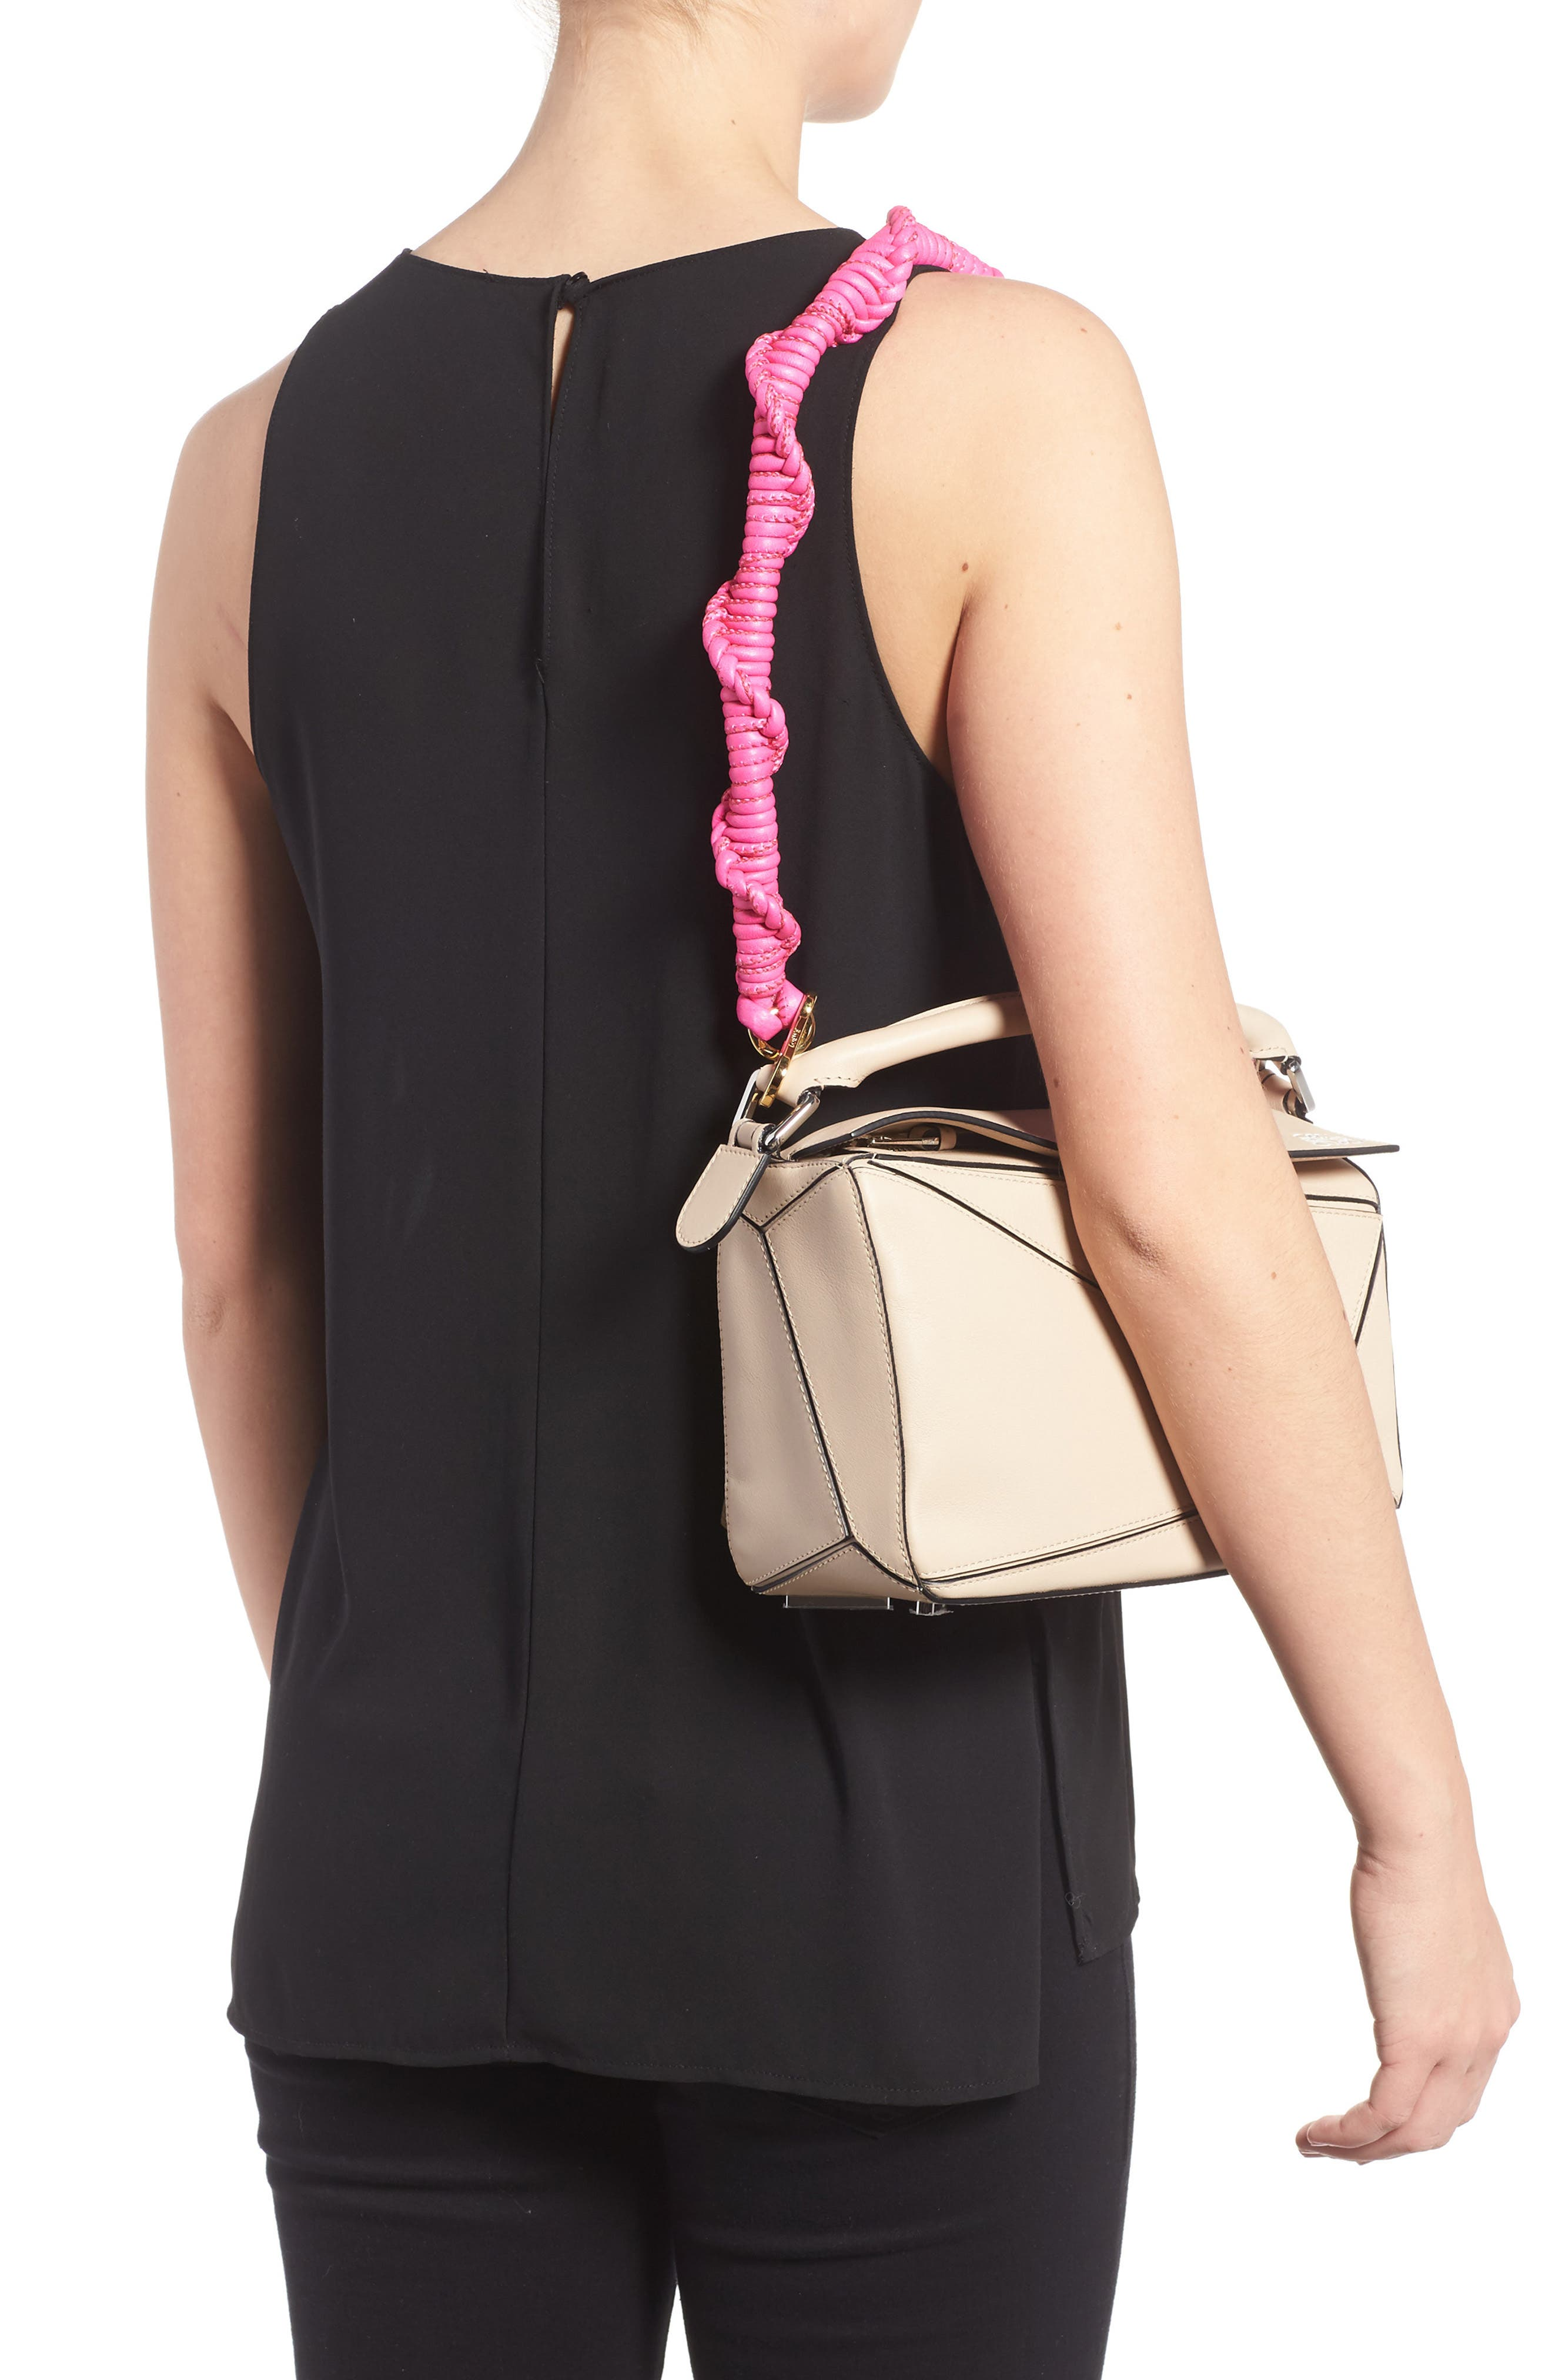 Braided Leather Bag Strap,                             Alternate thumbnail 2, color,                             690